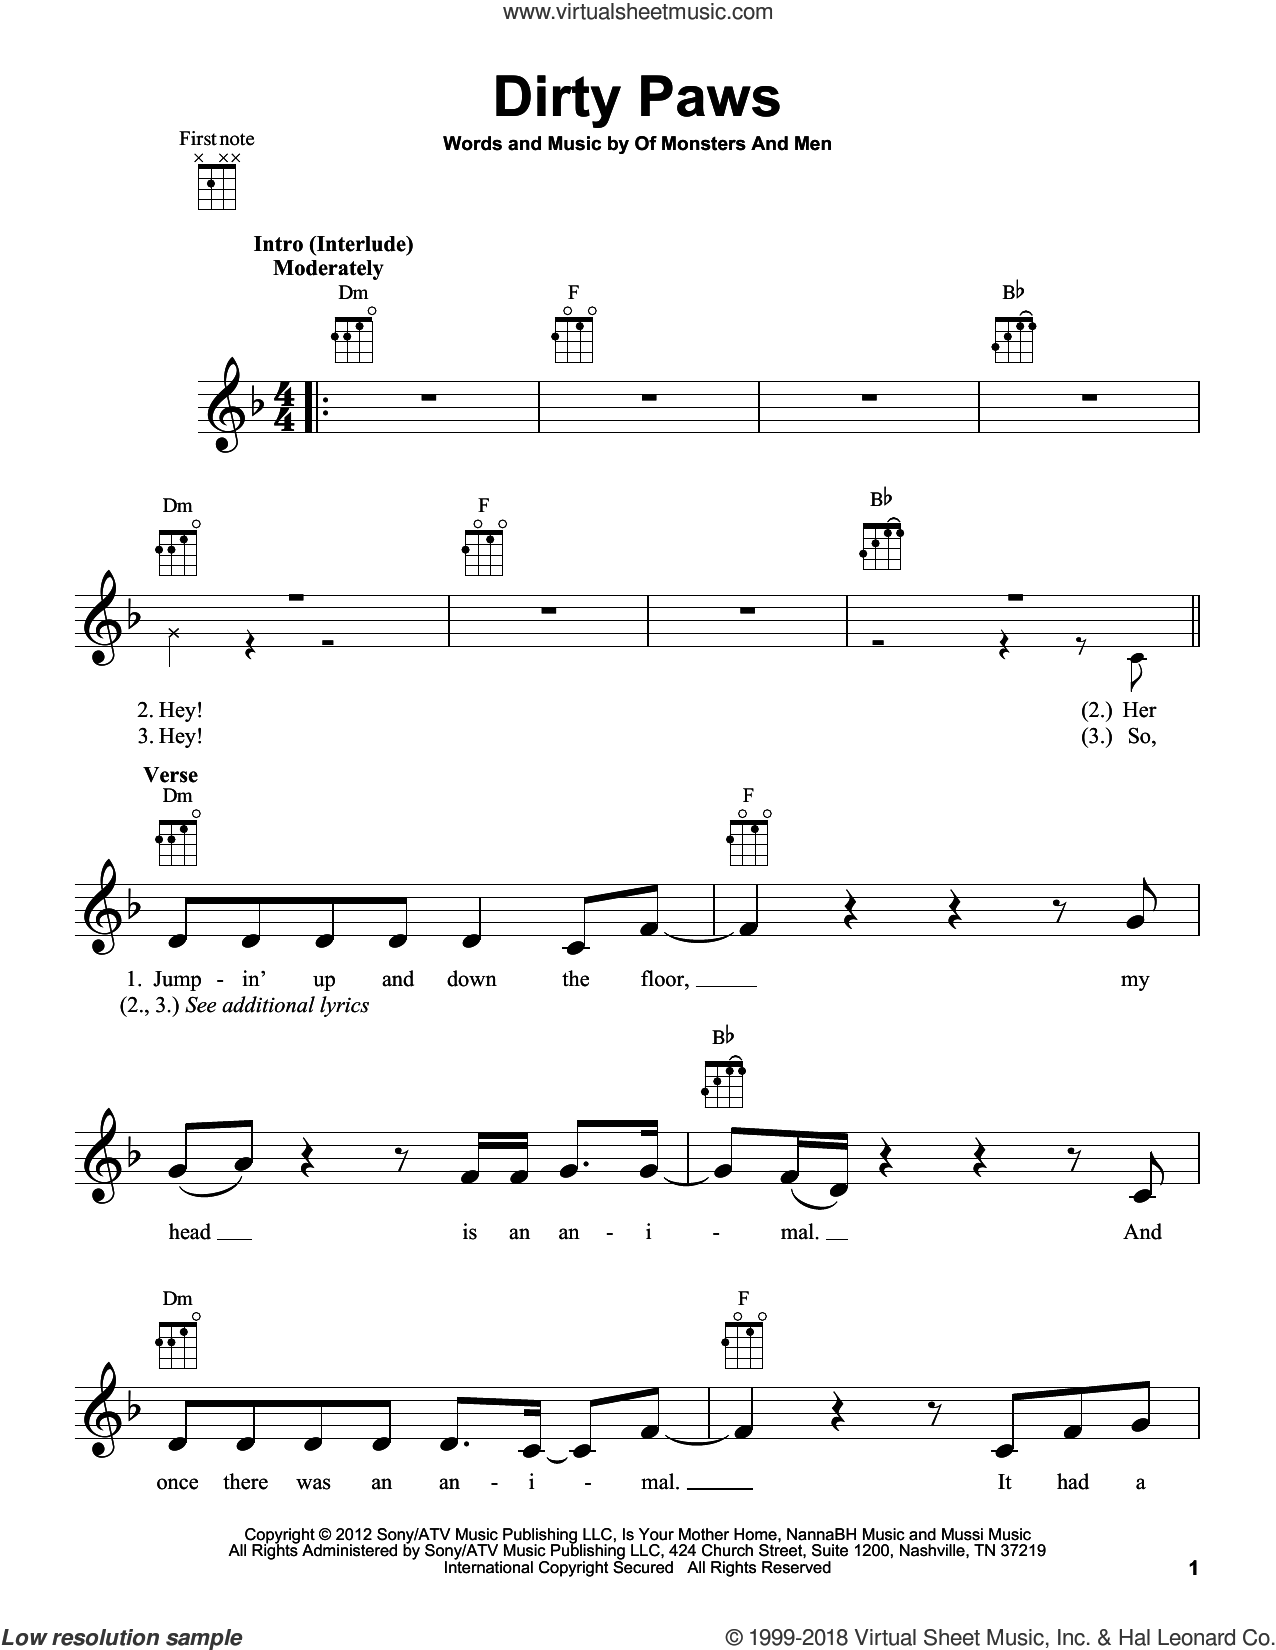 Dirty Paws sheet music for ukulele by Of Monsters And Men, intermediate skill level